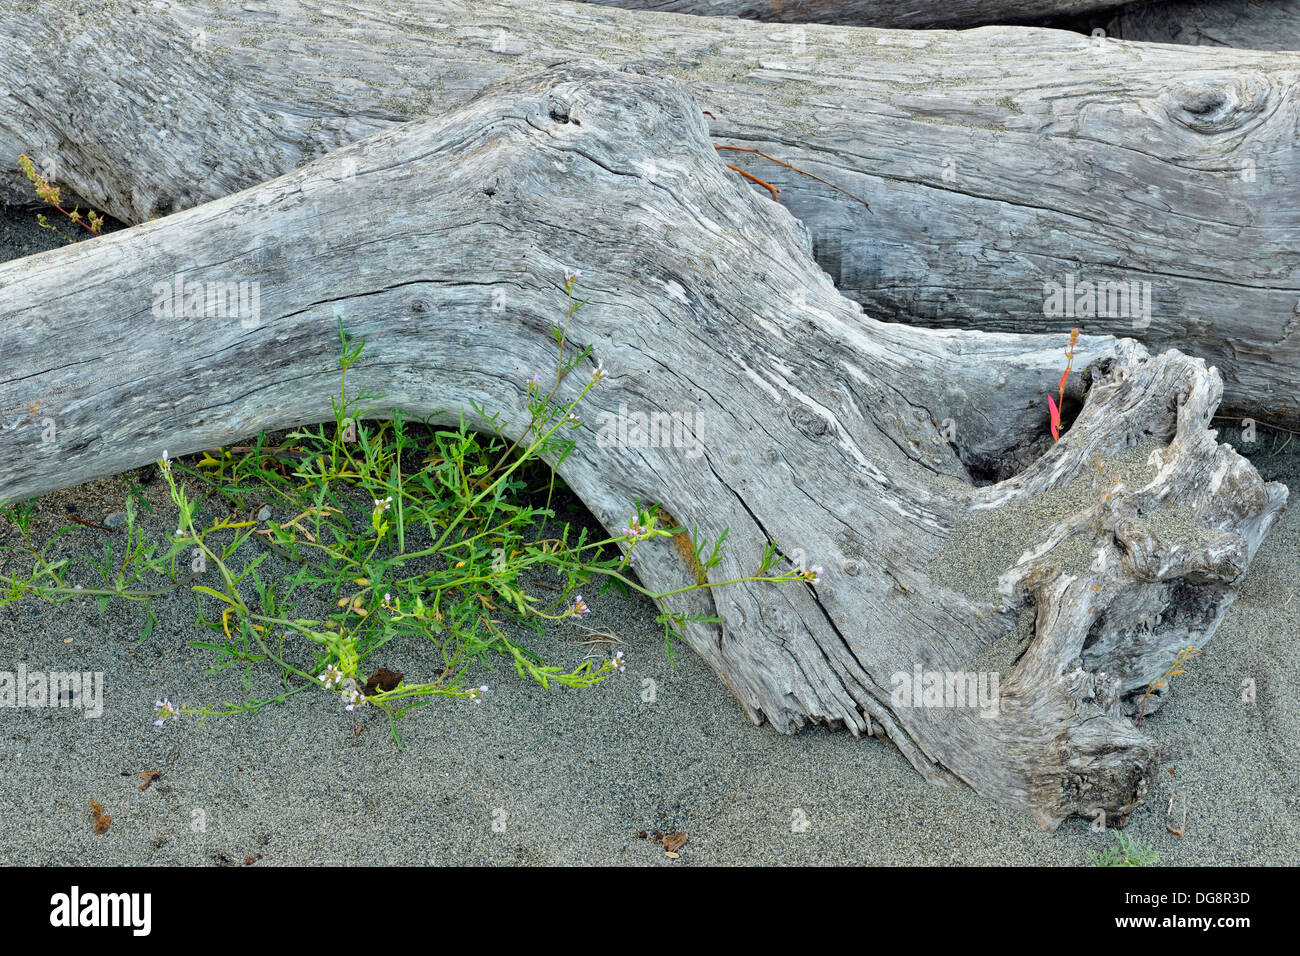 Driftwood logs and European Searocket Cakile maritima East Saanich First Nation Reserve No 2 Tsawout First Nation BC Canada - Stock Image